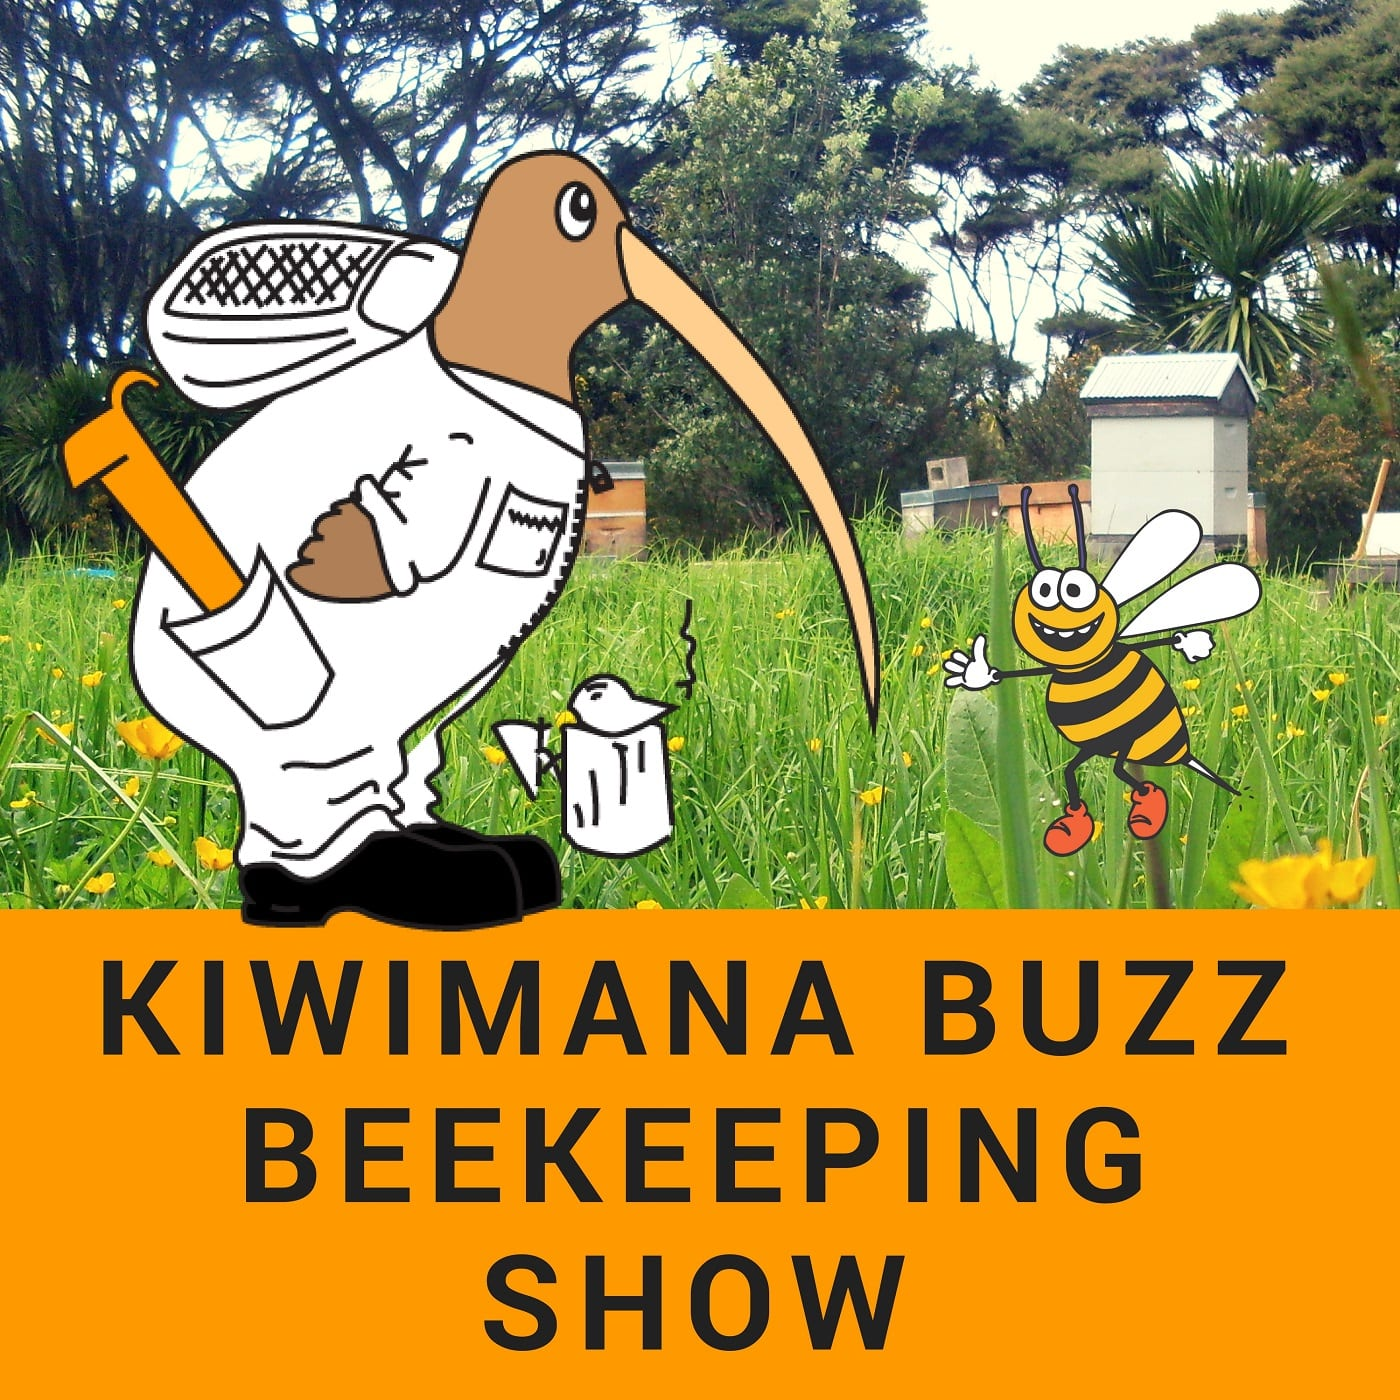 85bde78b8 Q and A - Finding Bees and stopping wasps - KM143